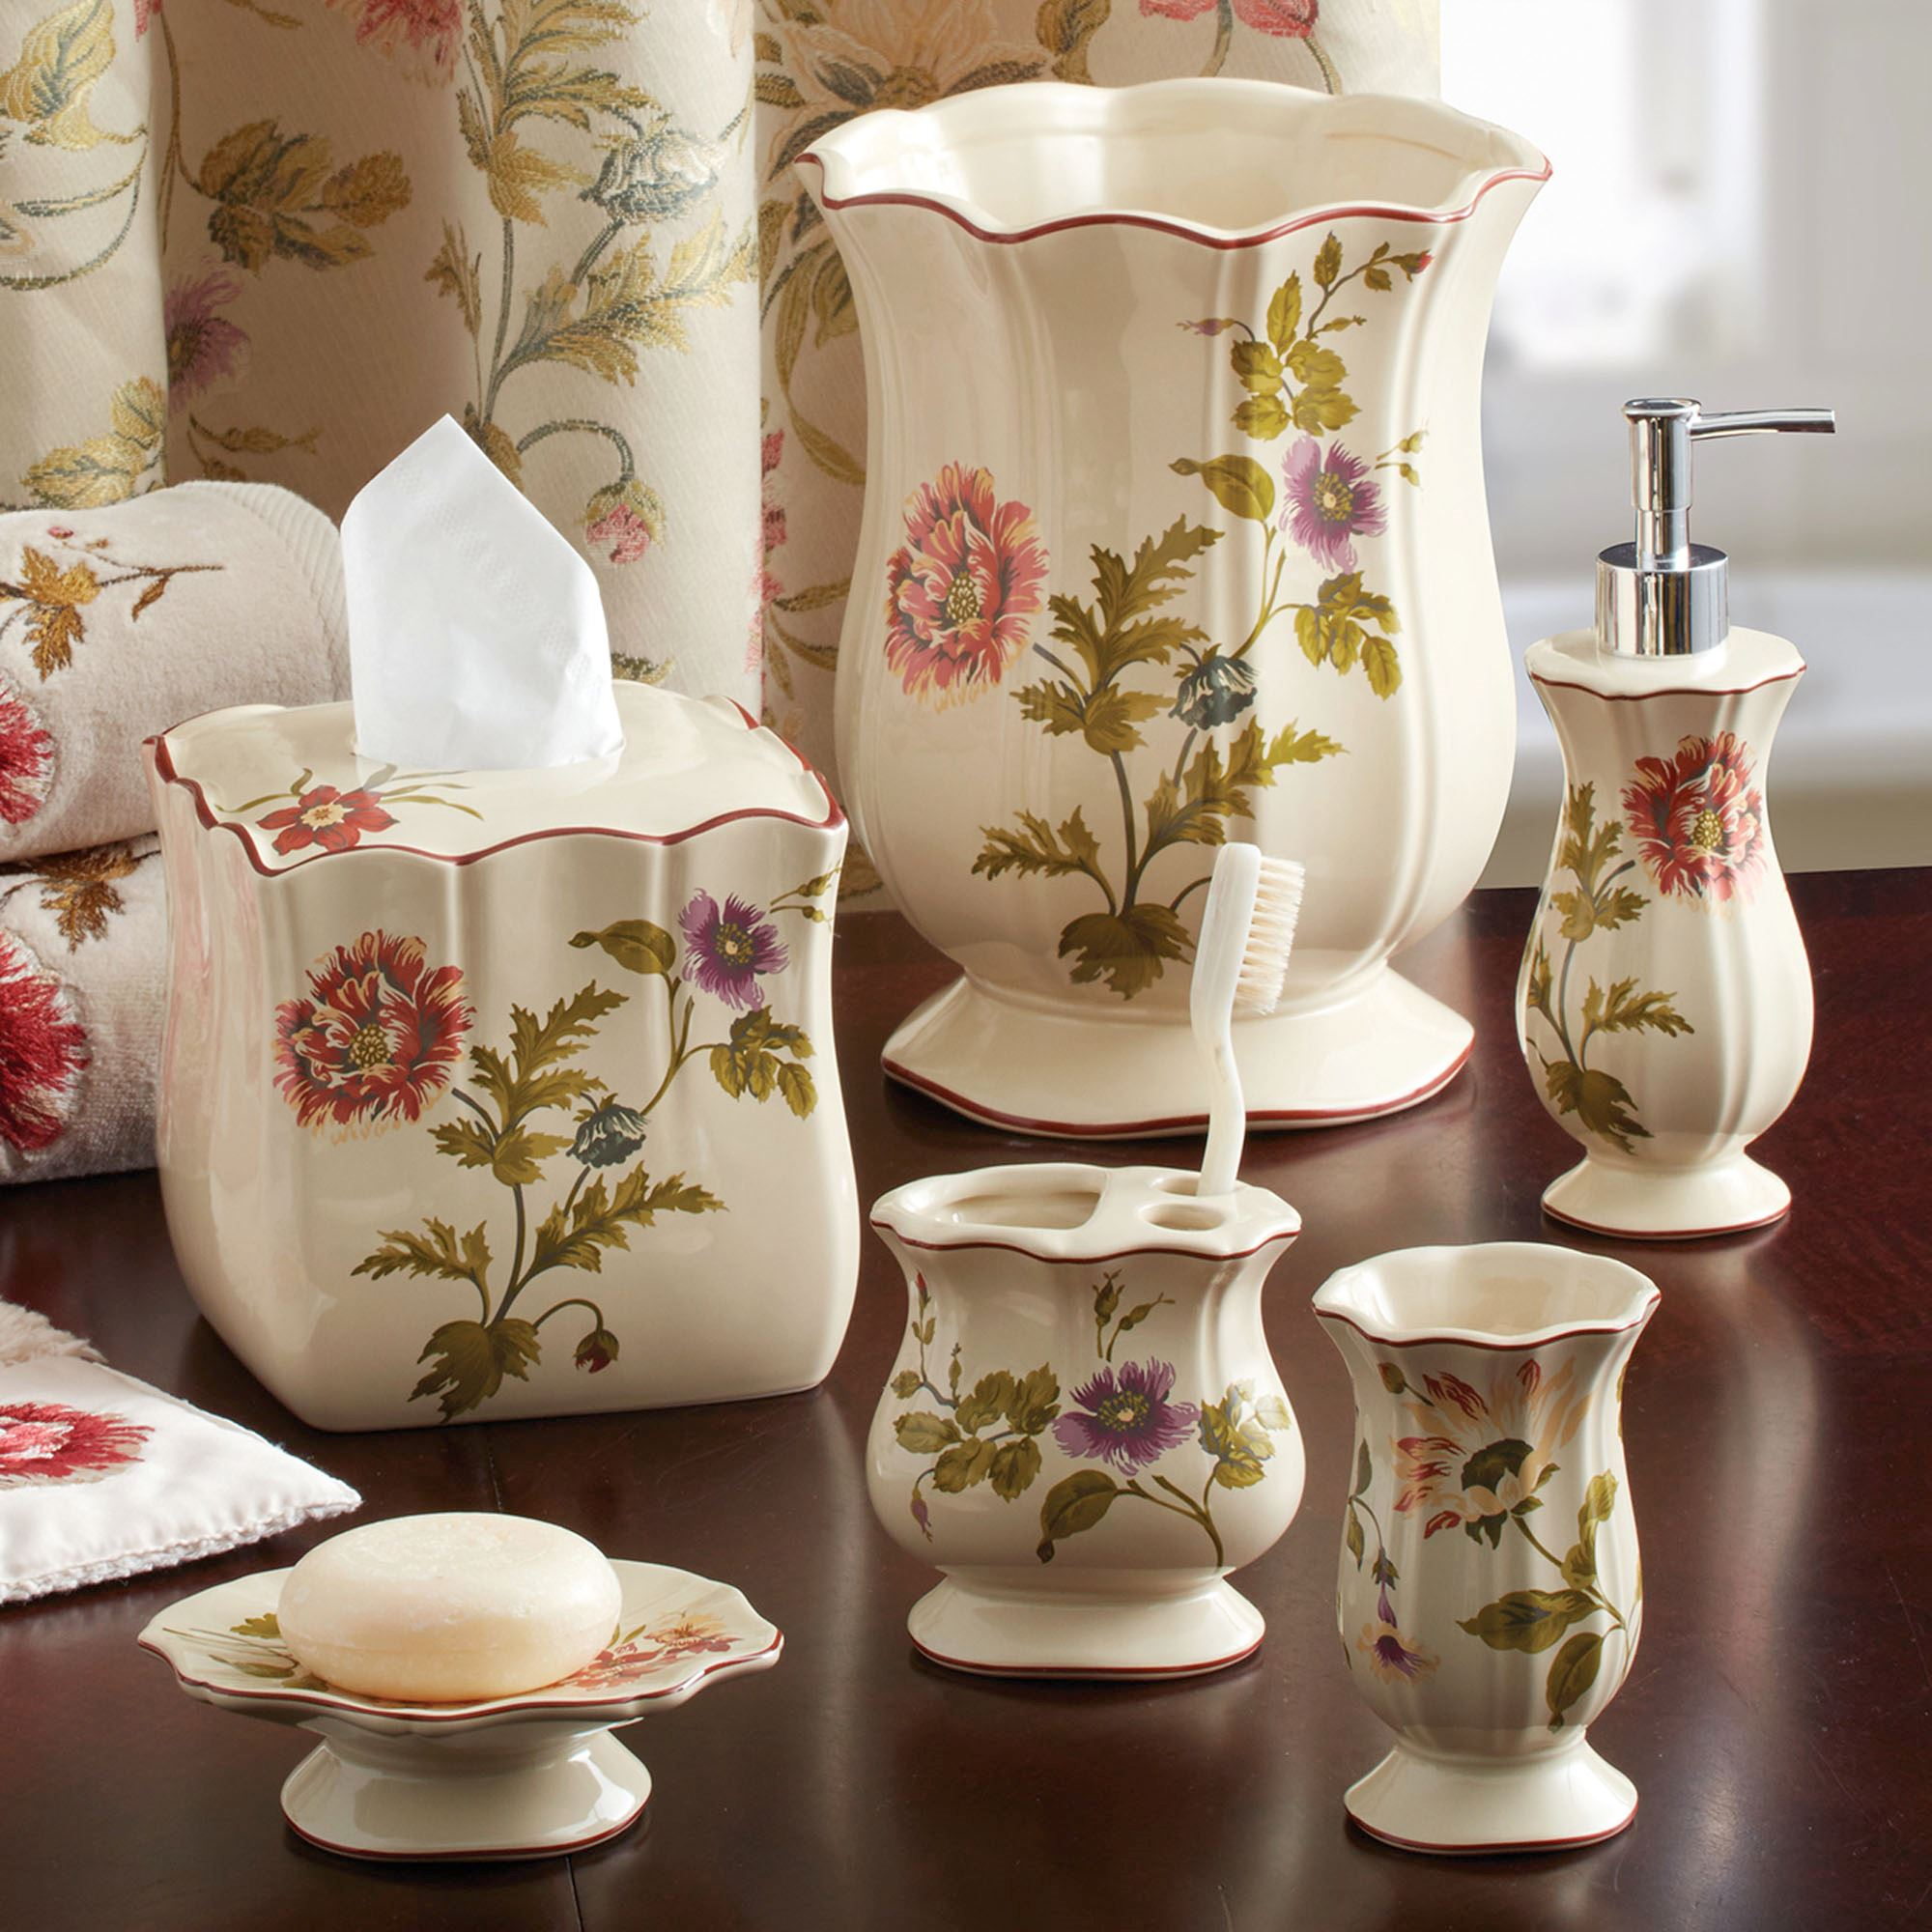 Daphne floral bath accessories by croscill for Floral bath accessories